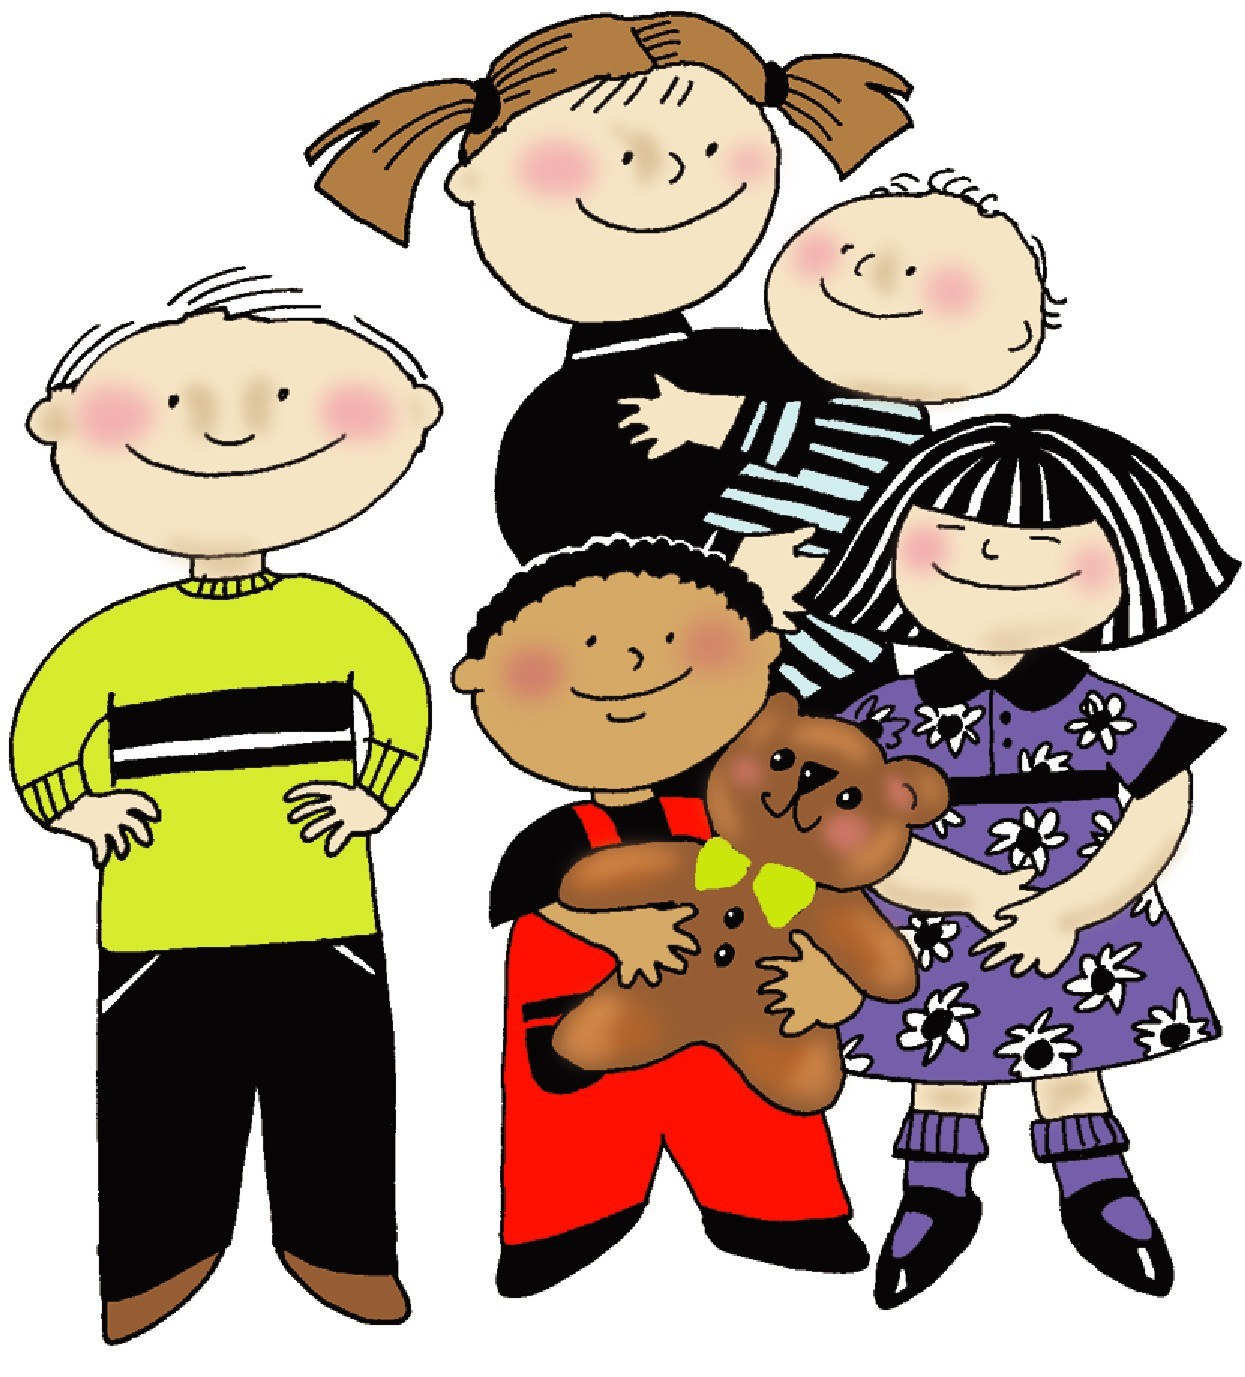 Adult Day Care Clipart - Clipart Kid